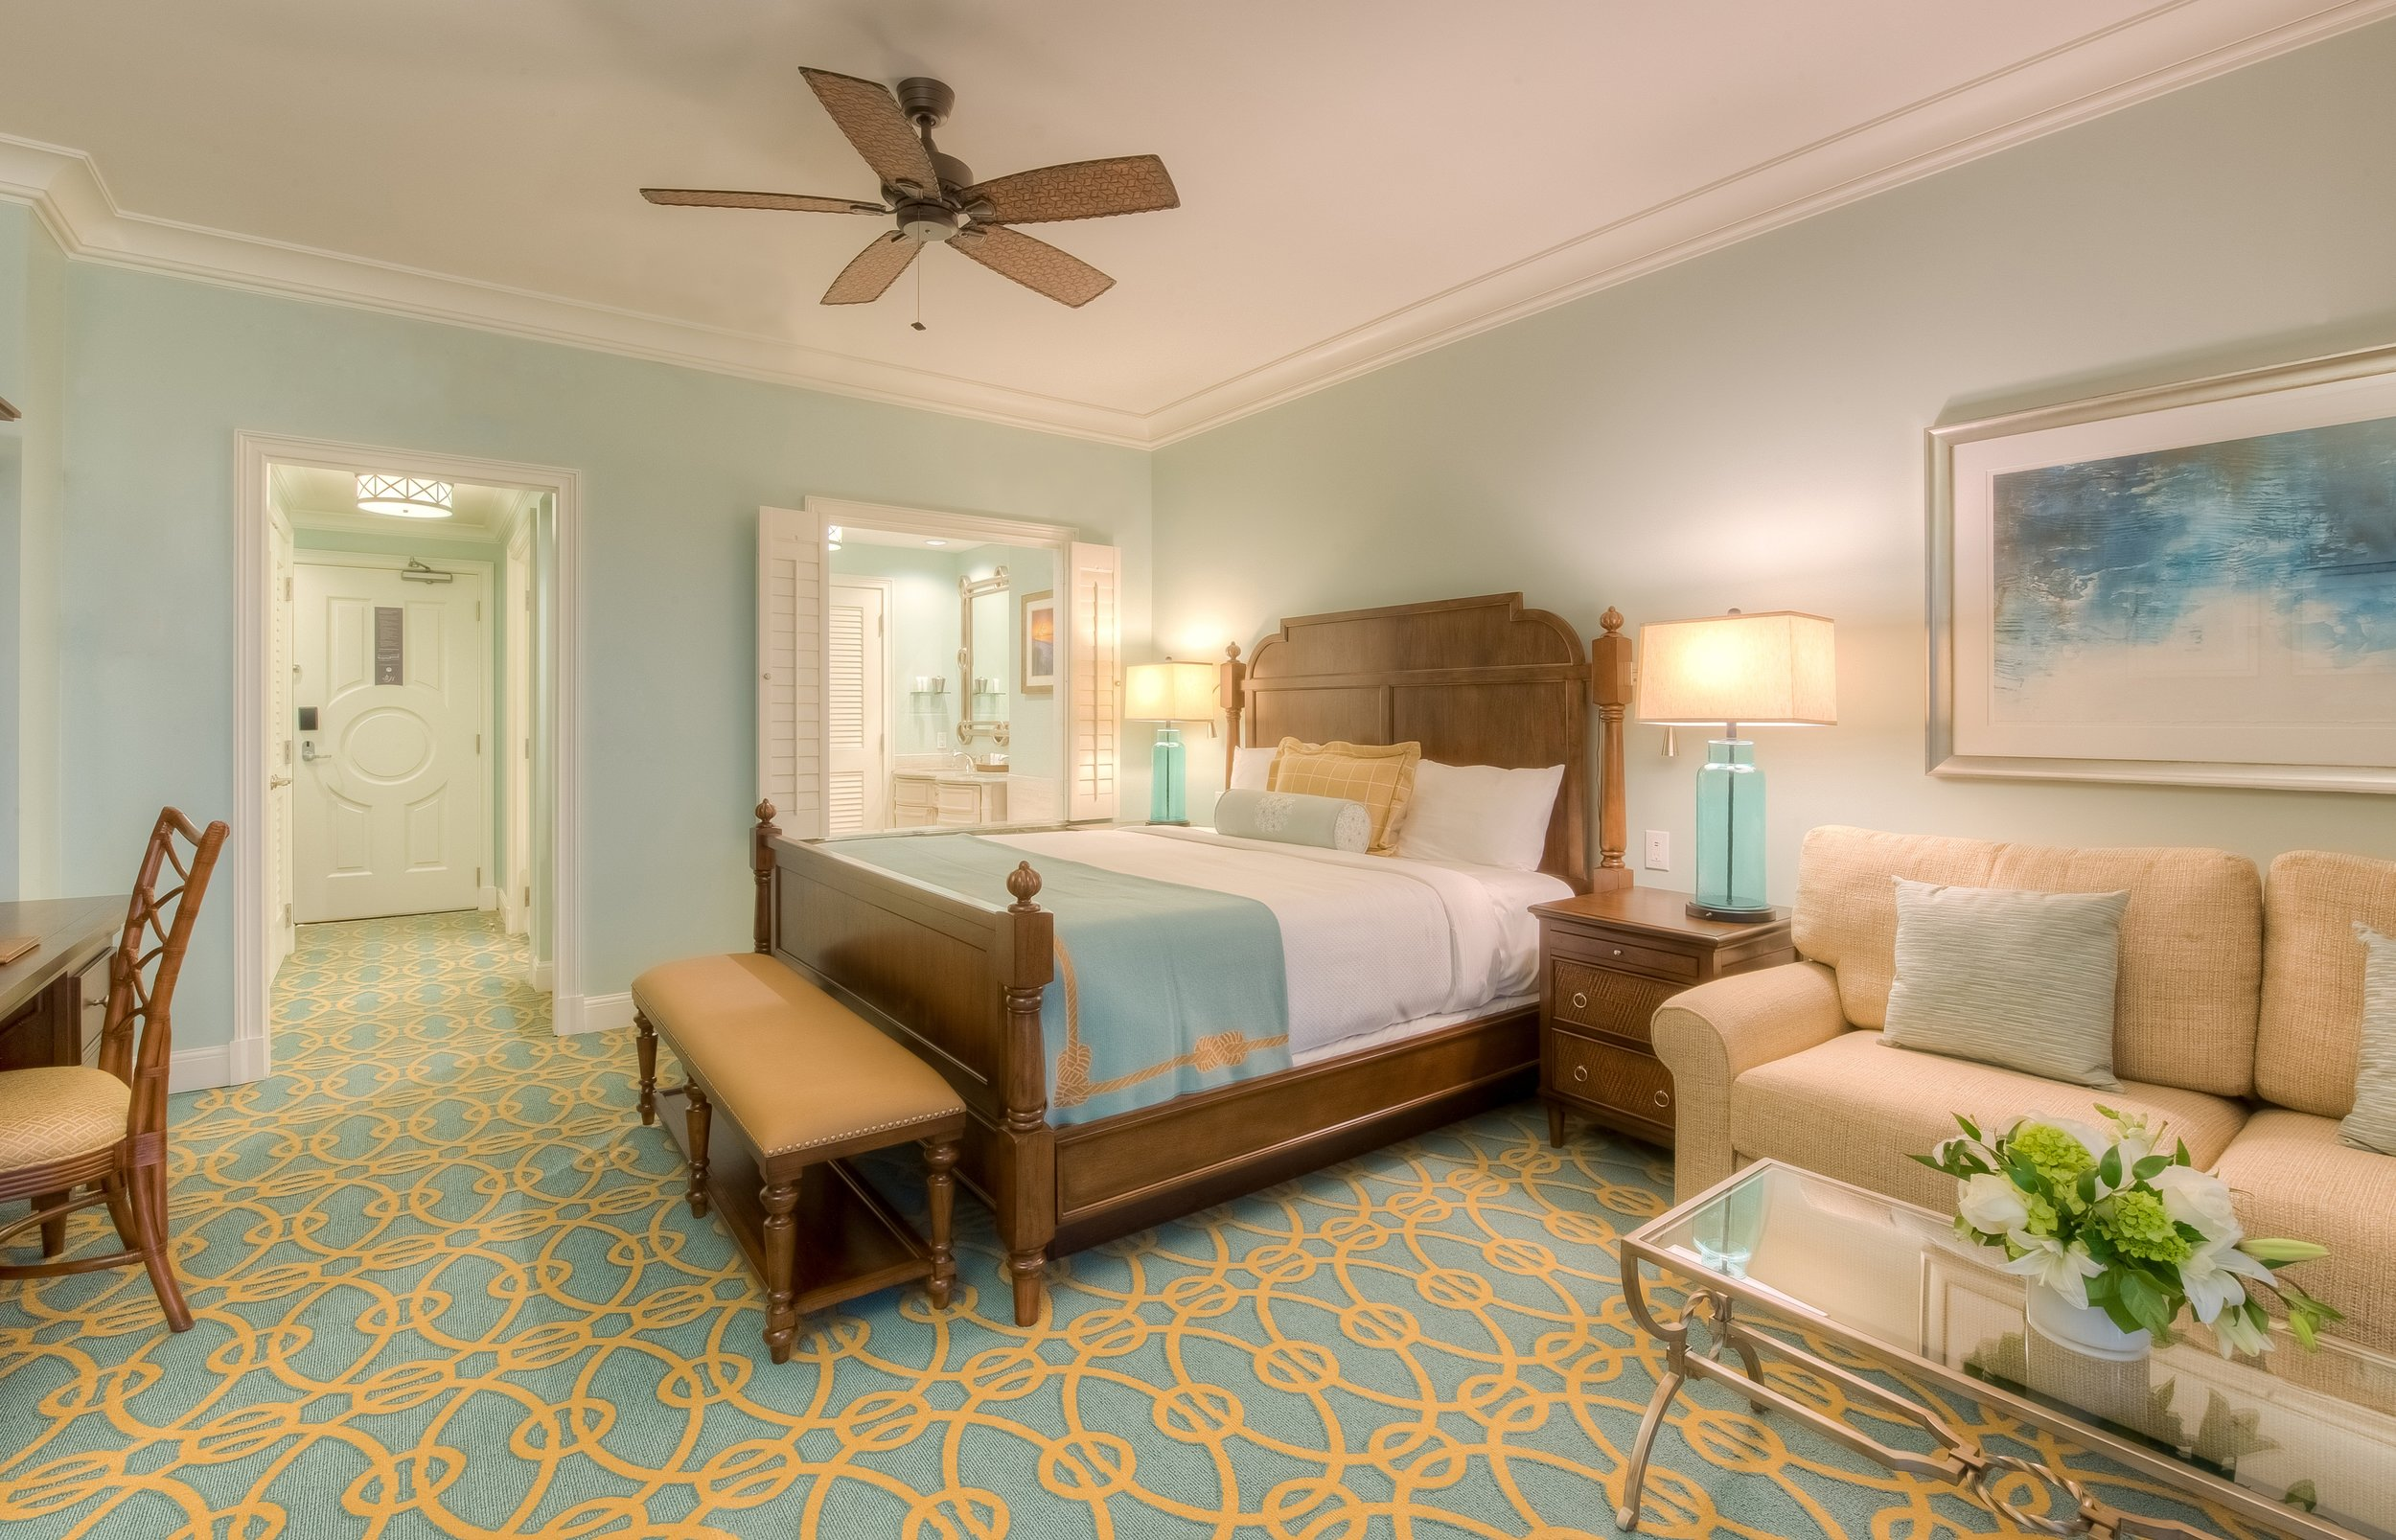 Henderson Beach Resort and Spa - 200 Henderson Resort Way, Destin, FloridaConference Rate: $159.00Booking Code: 10310Q